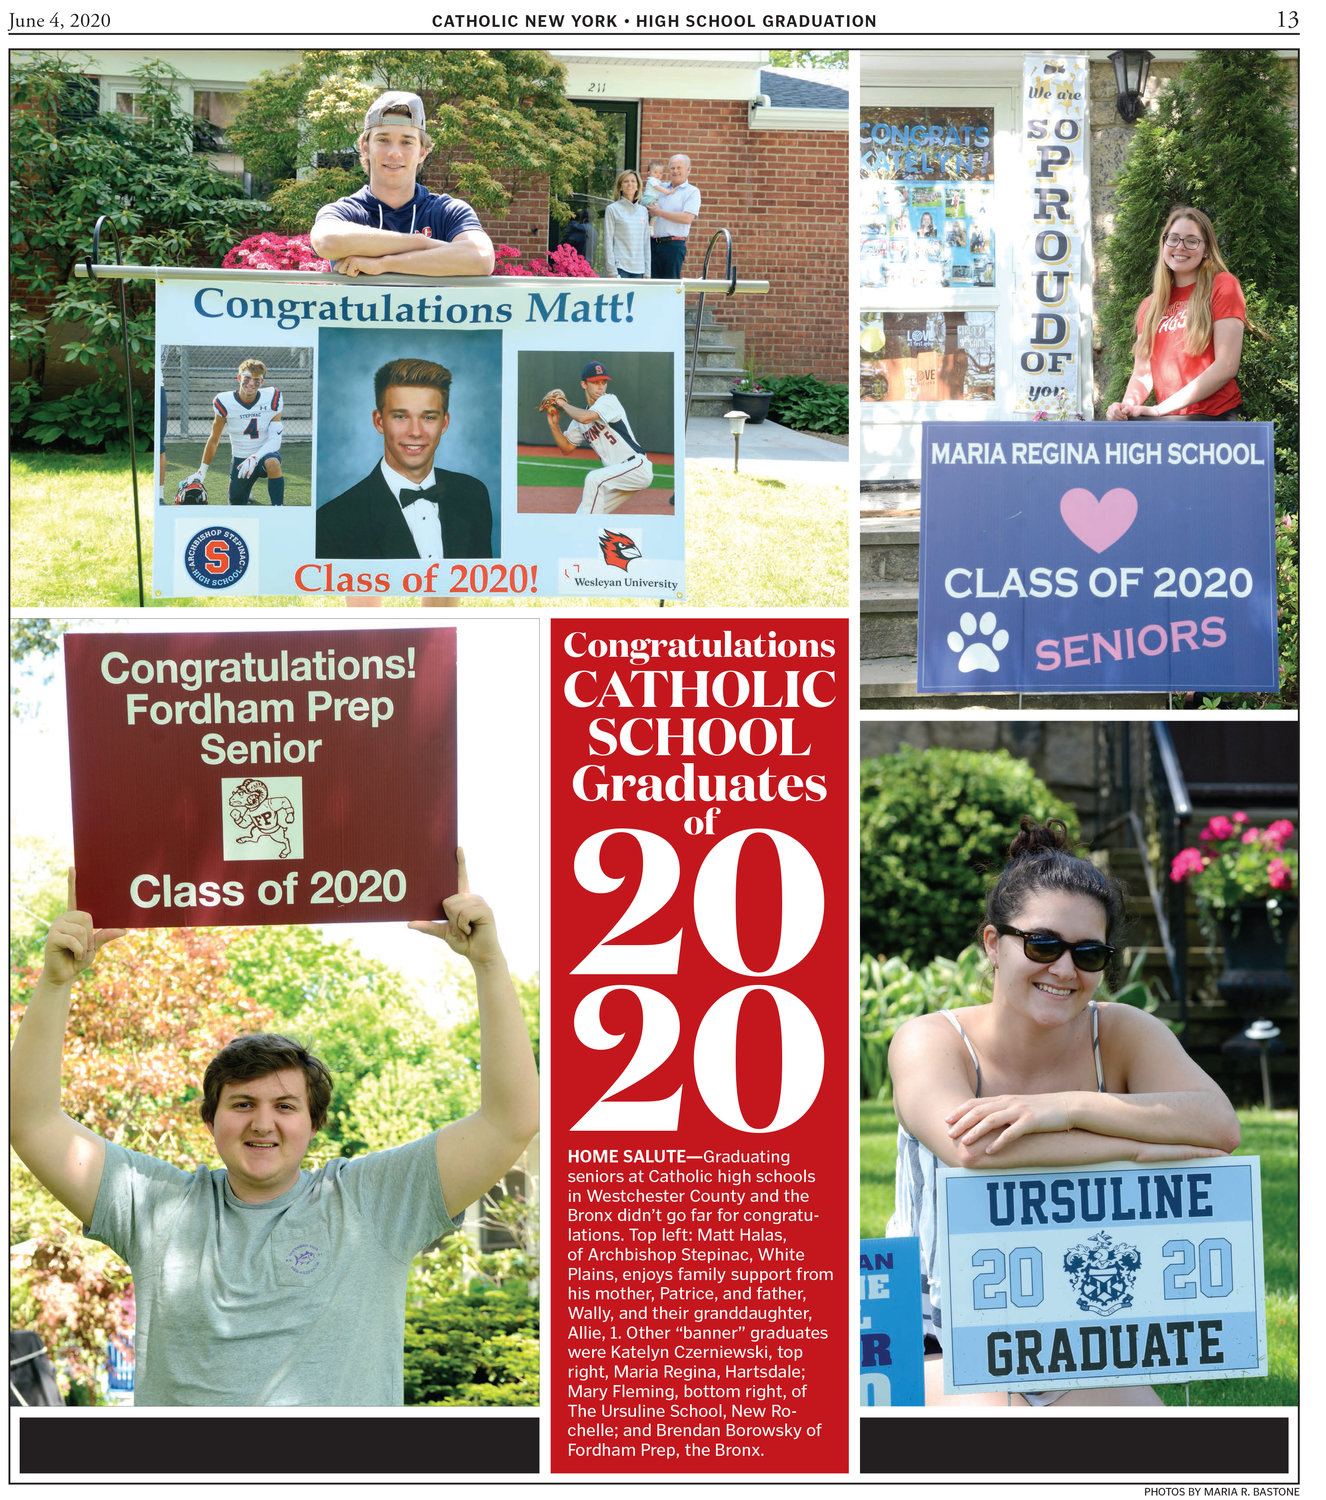 "HOME SALUTE—Graduating seniors at Catholic high schools in Westchester County and the Bronx didn't go far for congratulations. Top left: Matt Halas, of Archbishop Stepinac, White Plains, enjoys family support from his mother, Patrice, and father, Wally, and their granddaughter, Allie, 1. Other ""banner"" graduates were Katelyn Czerniewski, top right, Maria Regina, Hartsdale; Mary Fleming, bottom right, of The Ursuline School, New Rochelle; and Brendan Borowsky of Fordham Prep, the Bronx."